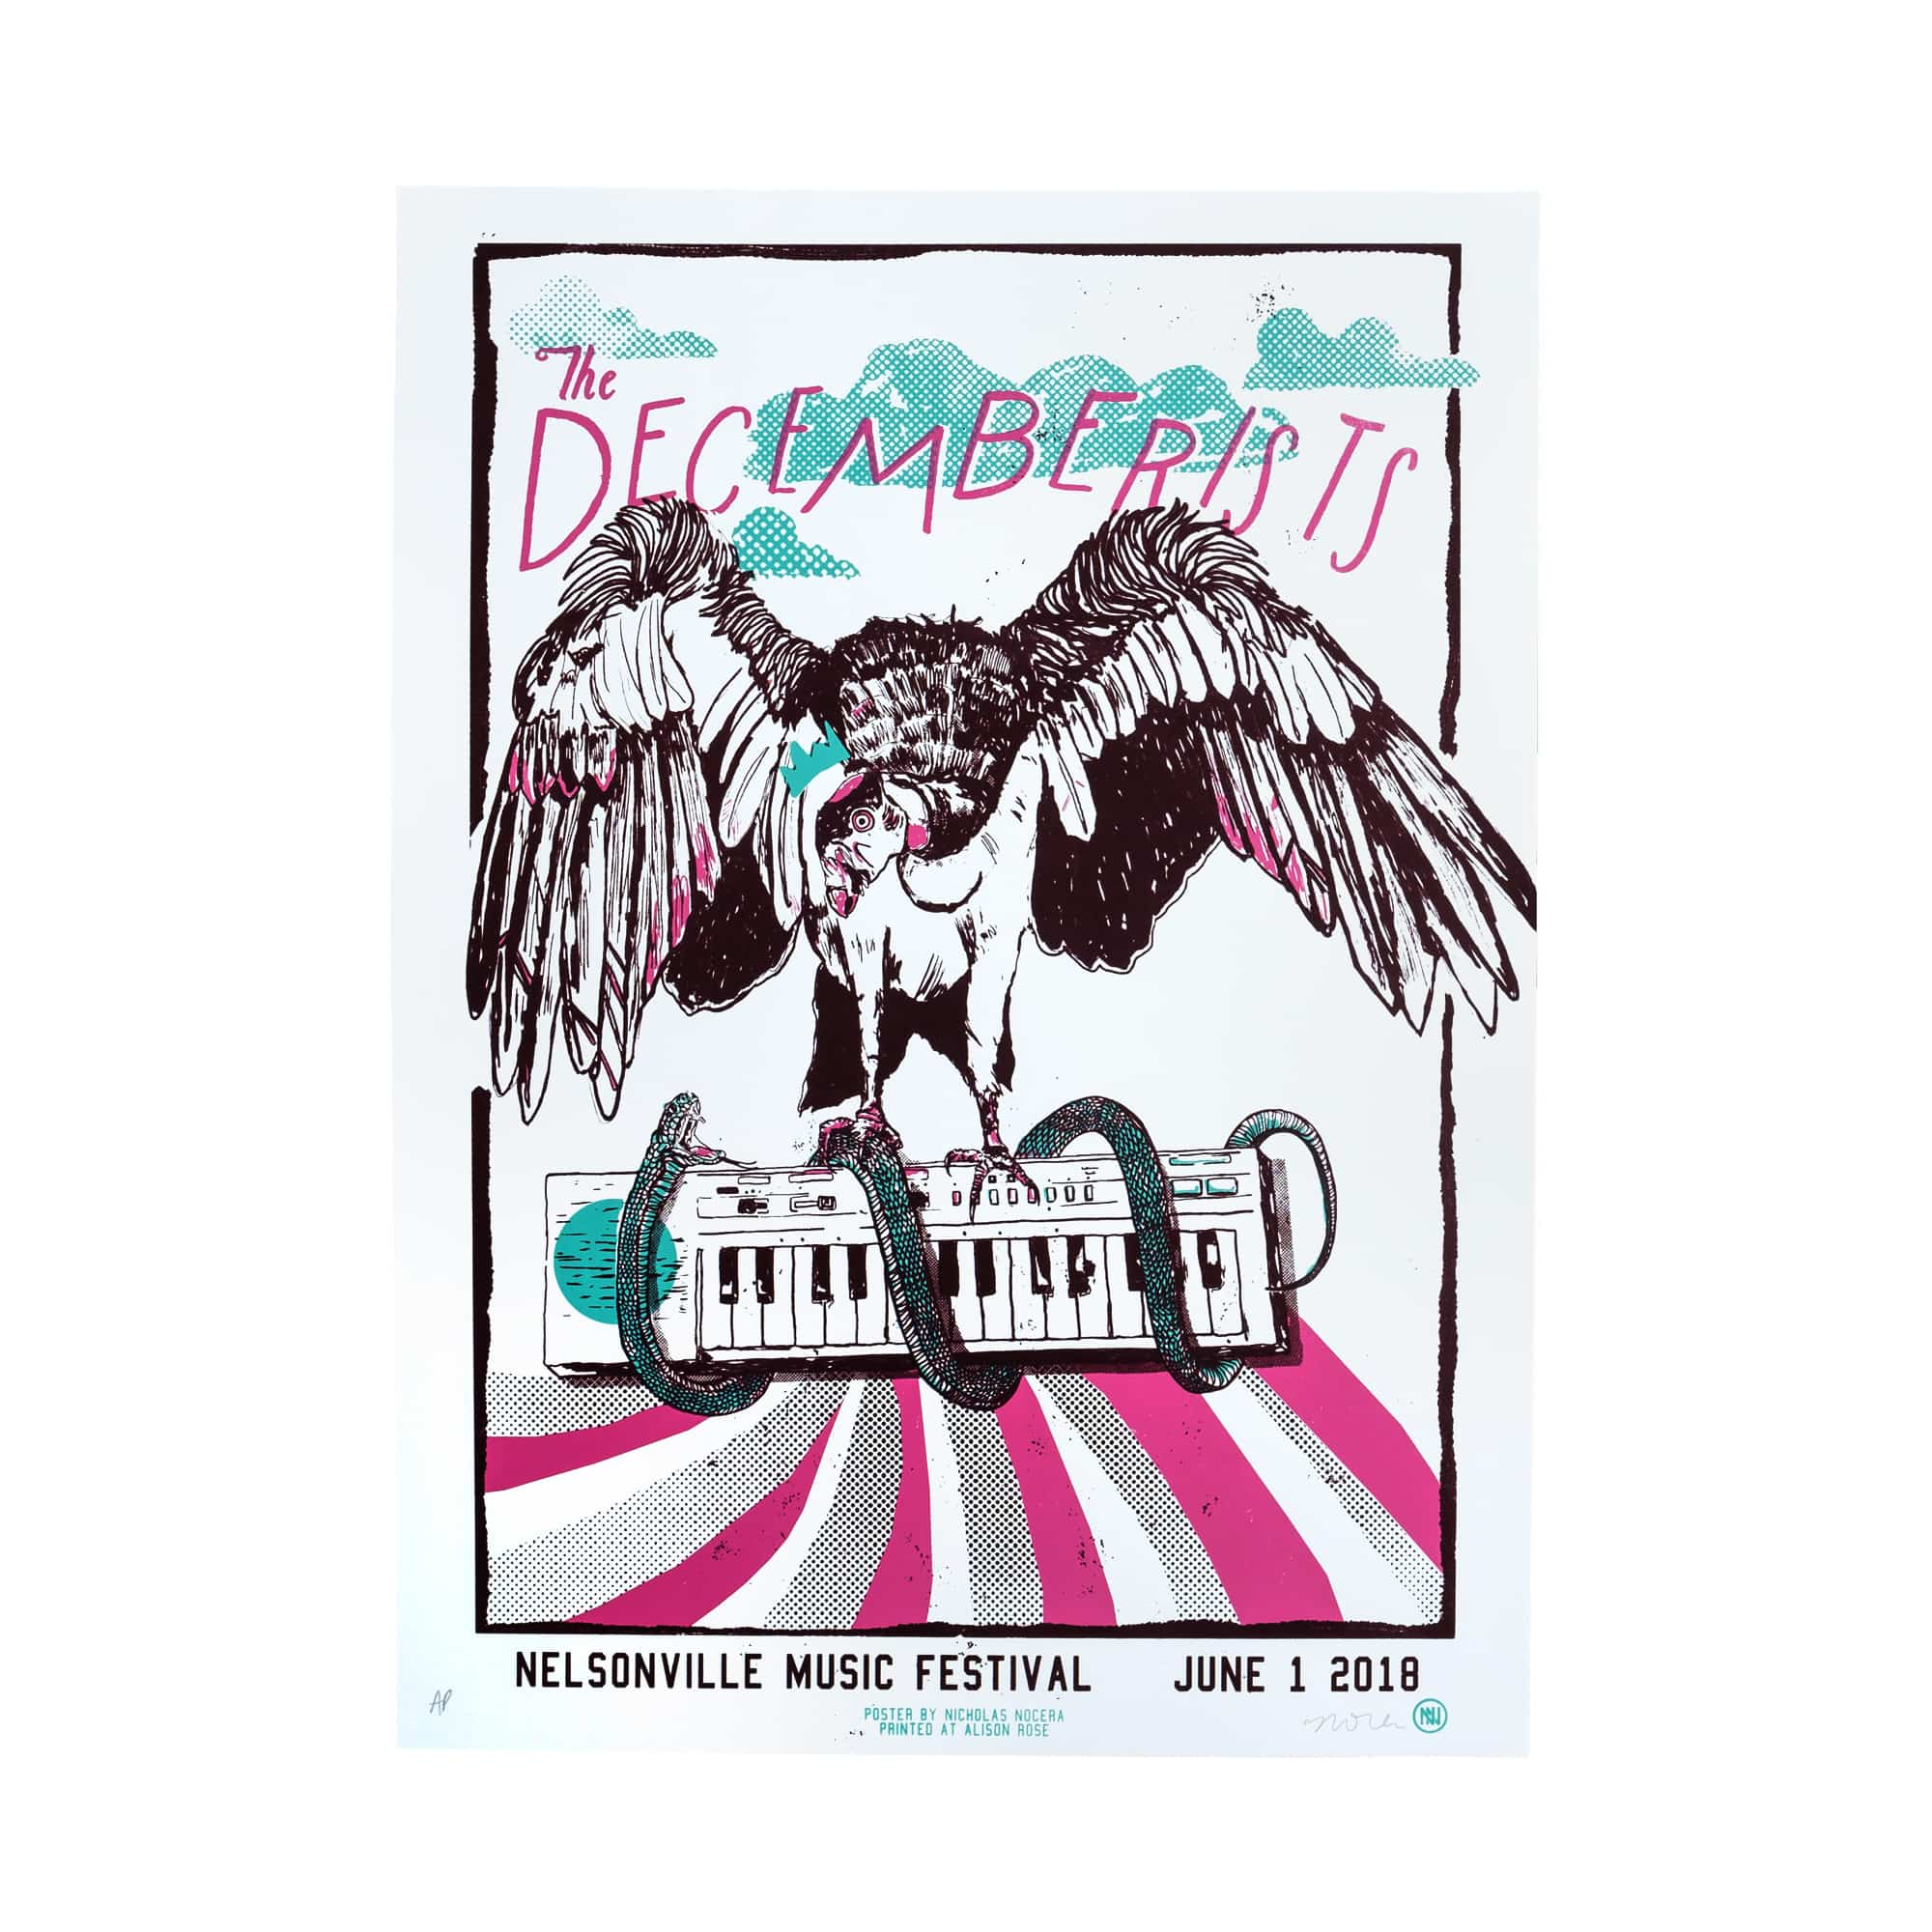 The Decemberists At Nelsonville Music Festival June 1st 2018 Poster - 16